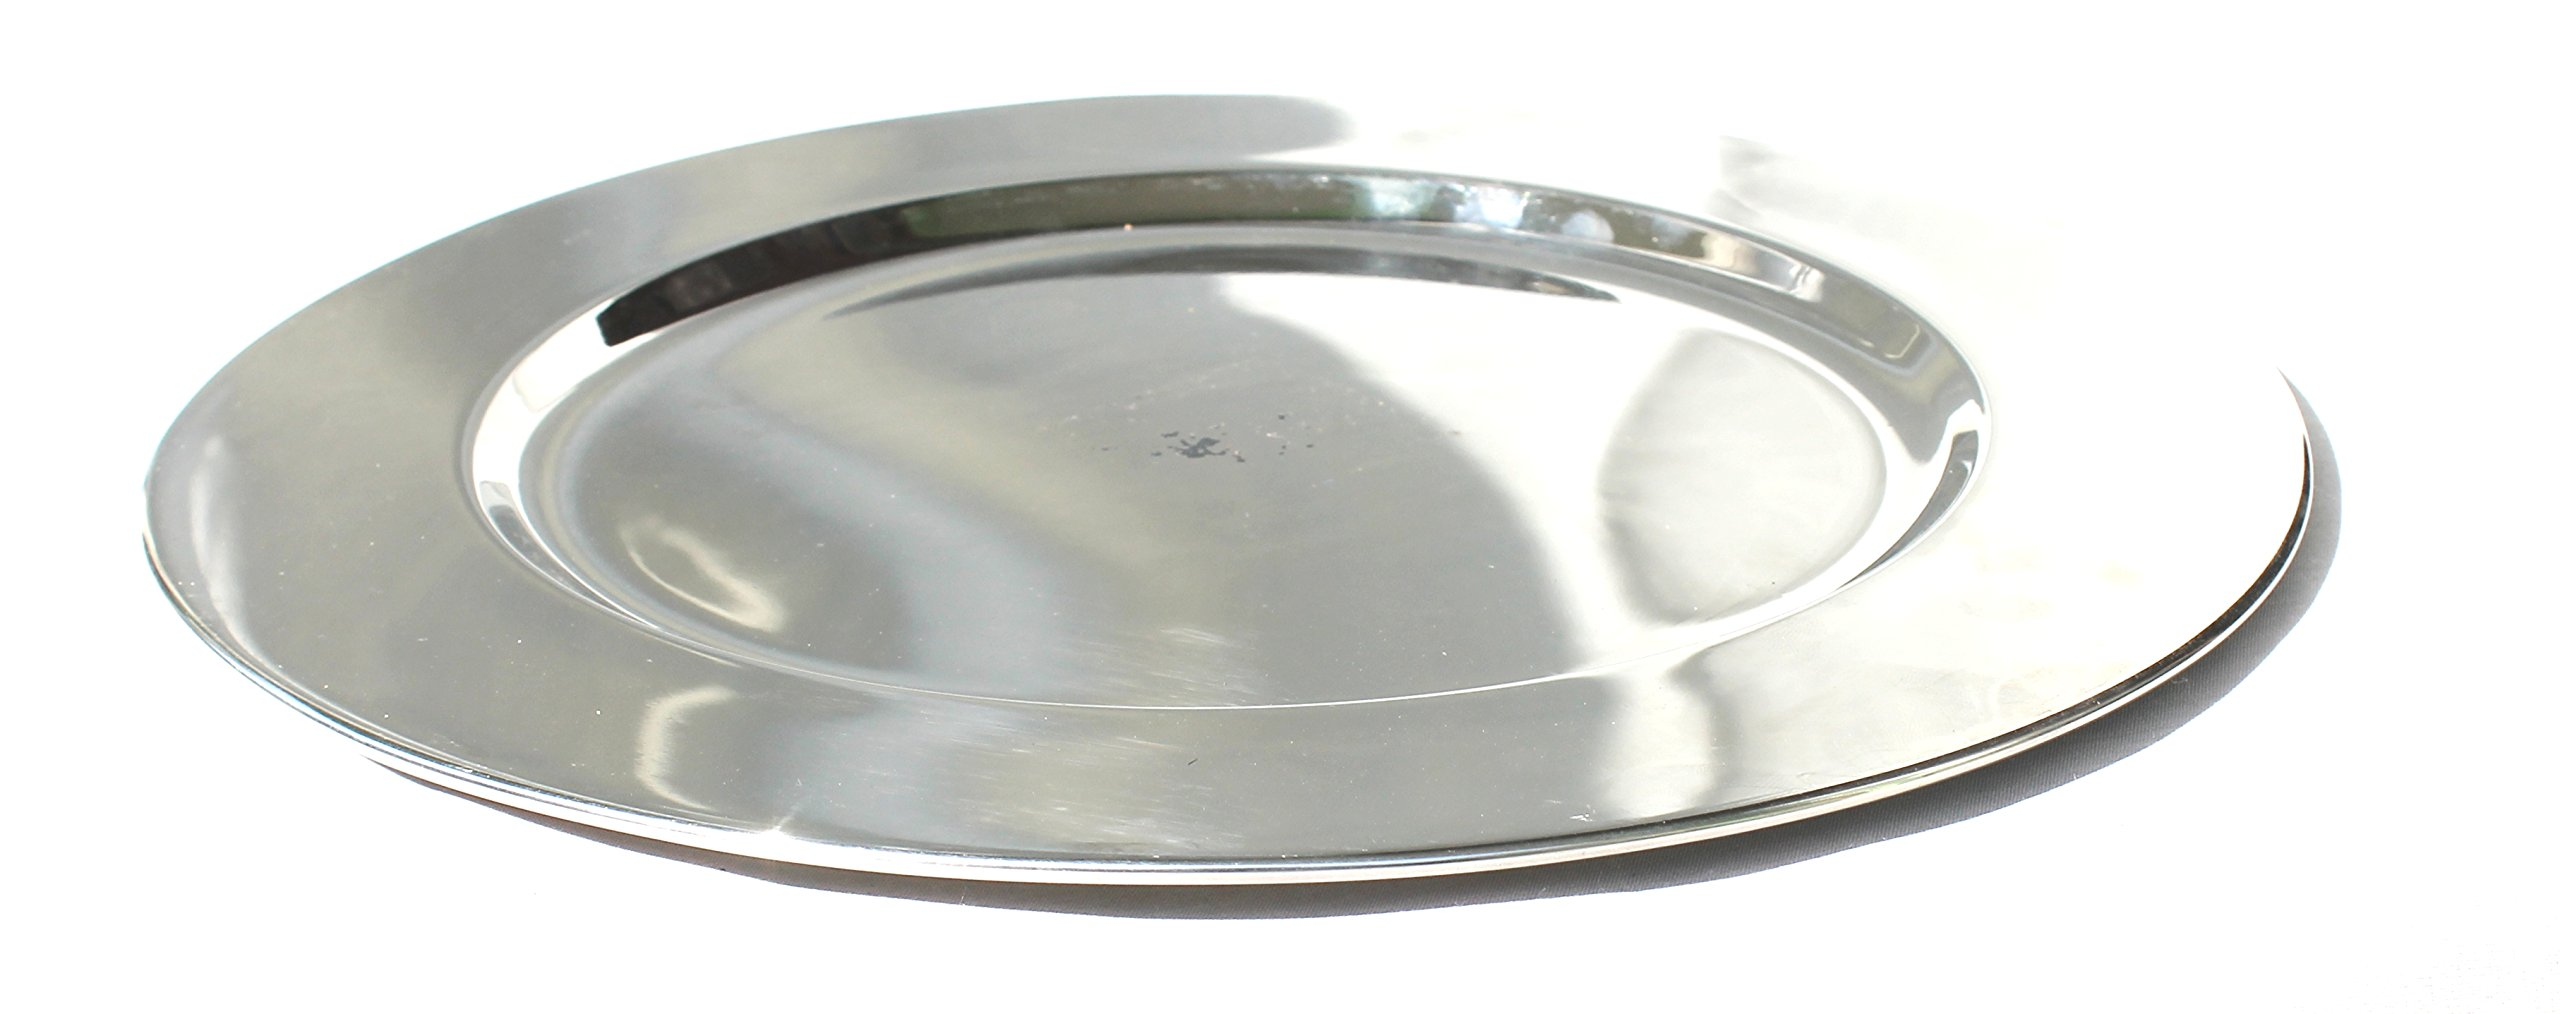 STREET CRAFT Premum Quliaty Stainless Steel Classic Design Round 9''x9'' In Charger Plates with Mirror Finish